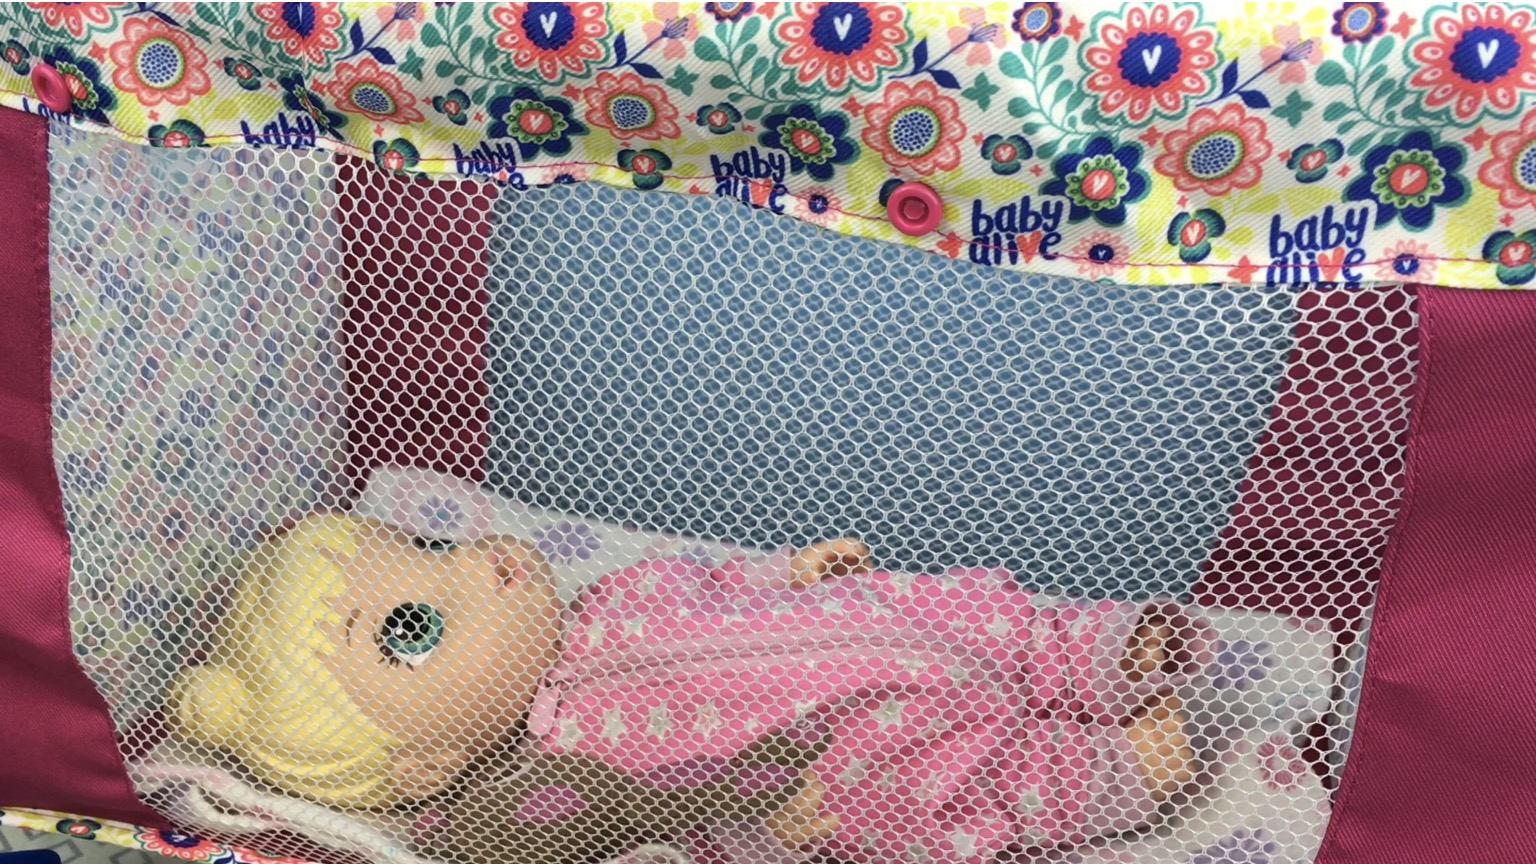 Fun With Baby Alive Baby Alive Better Now Bailey Morning